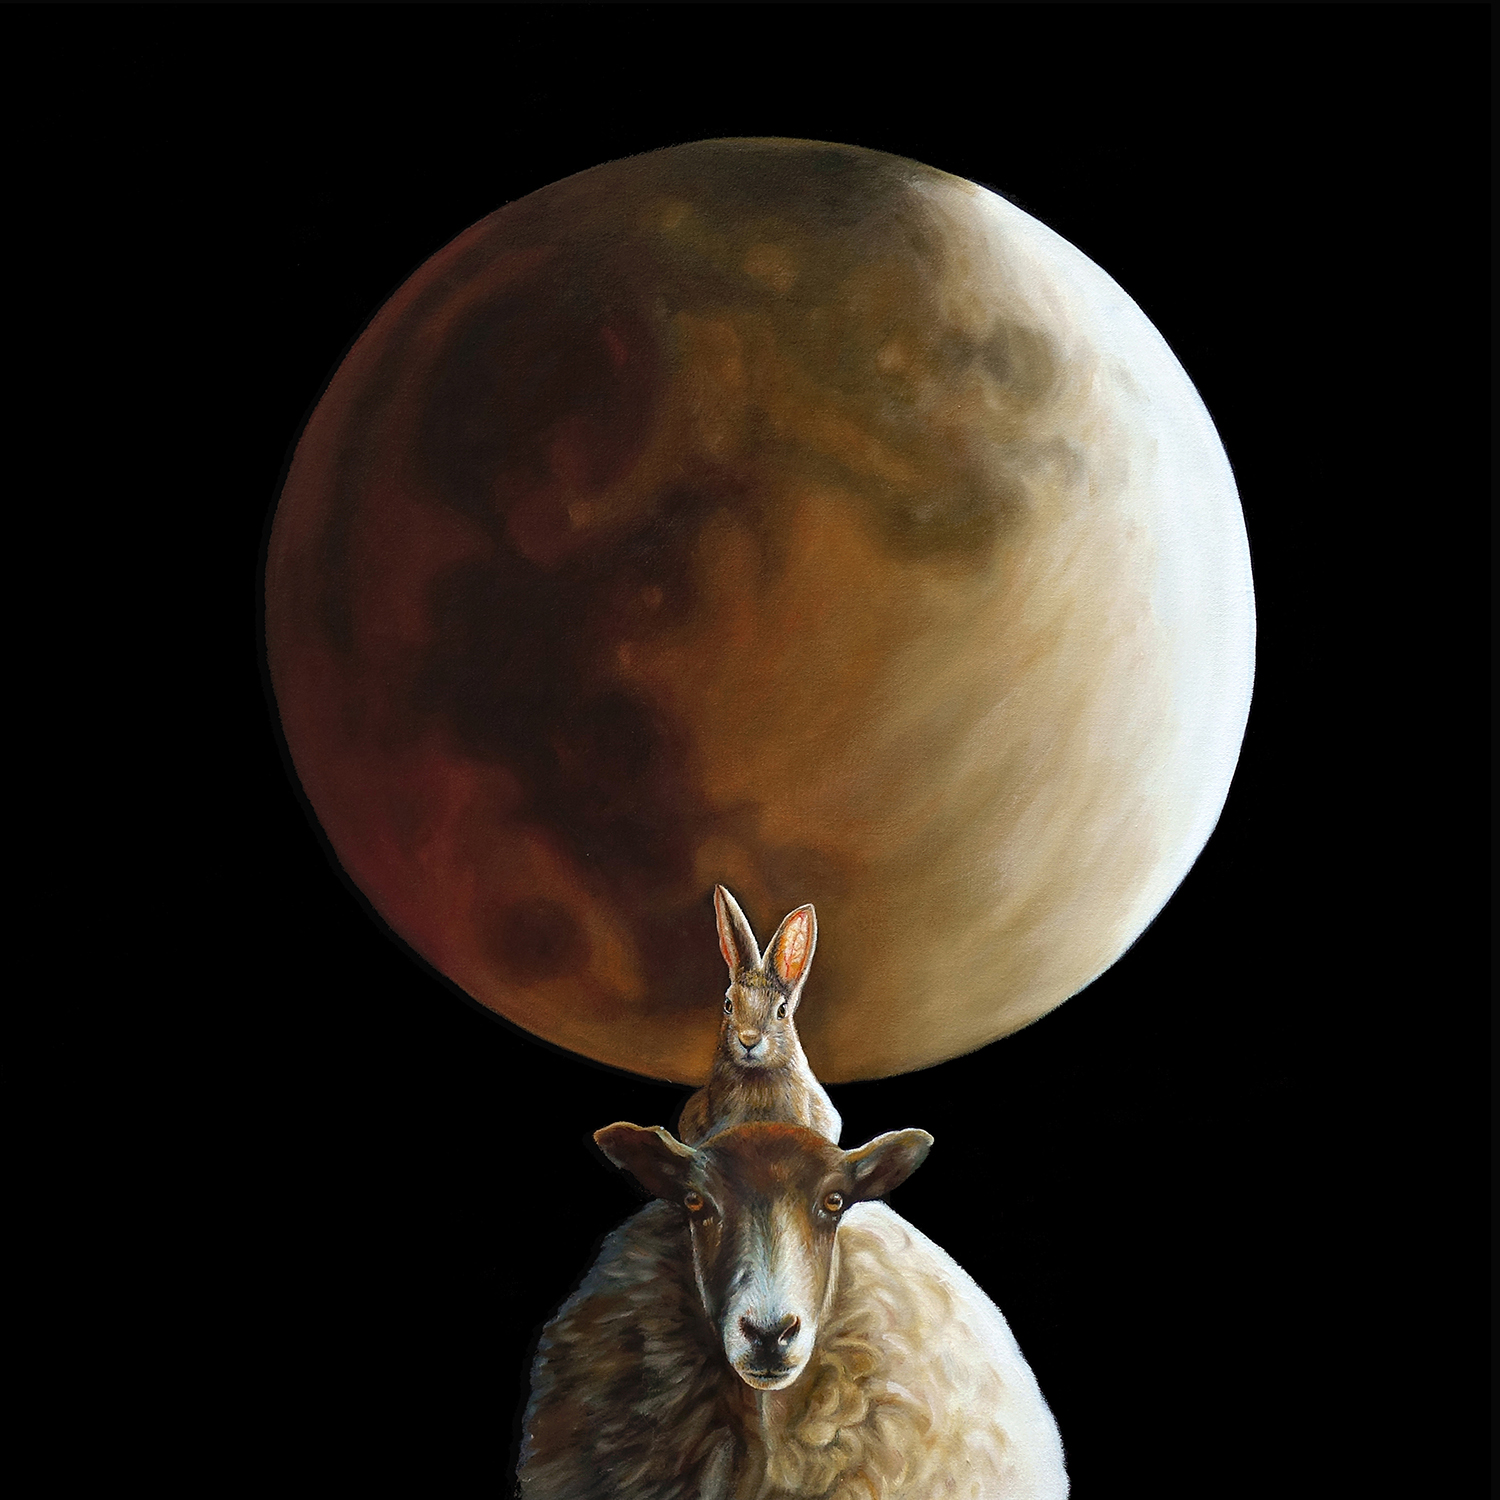 Moon Crossing    |   30 x 30    |   Oil on canvas